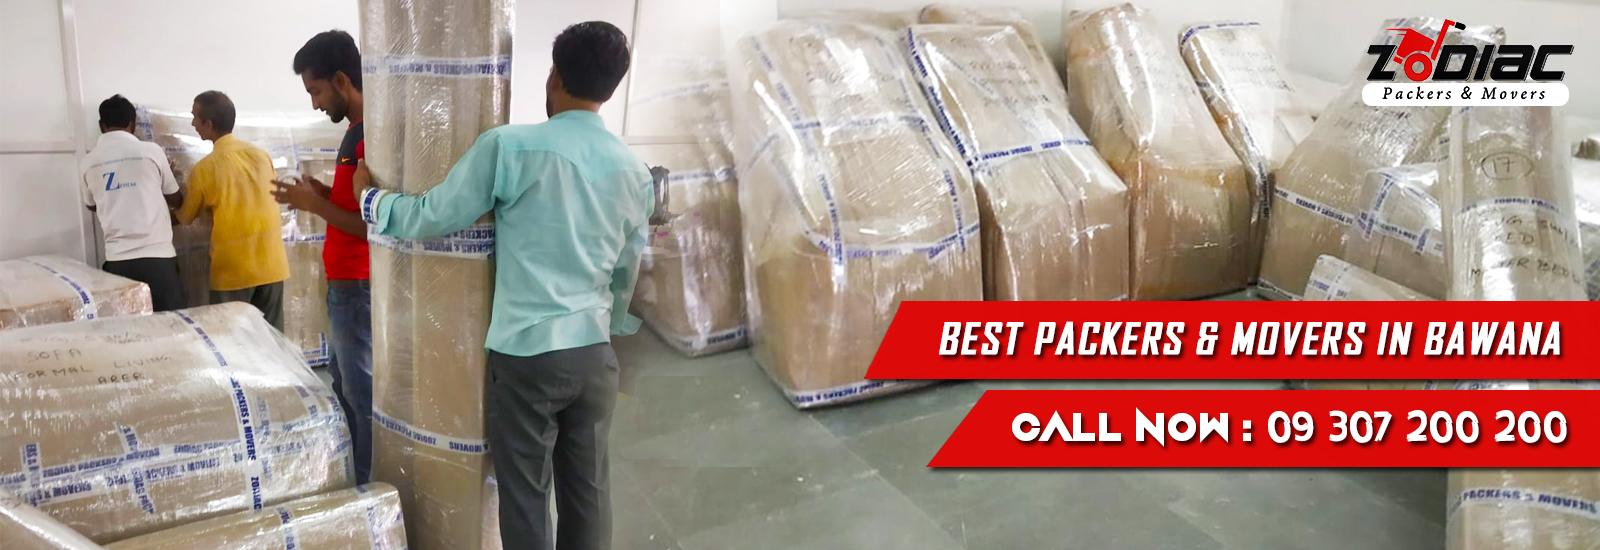 Packers and Movers in Bawana